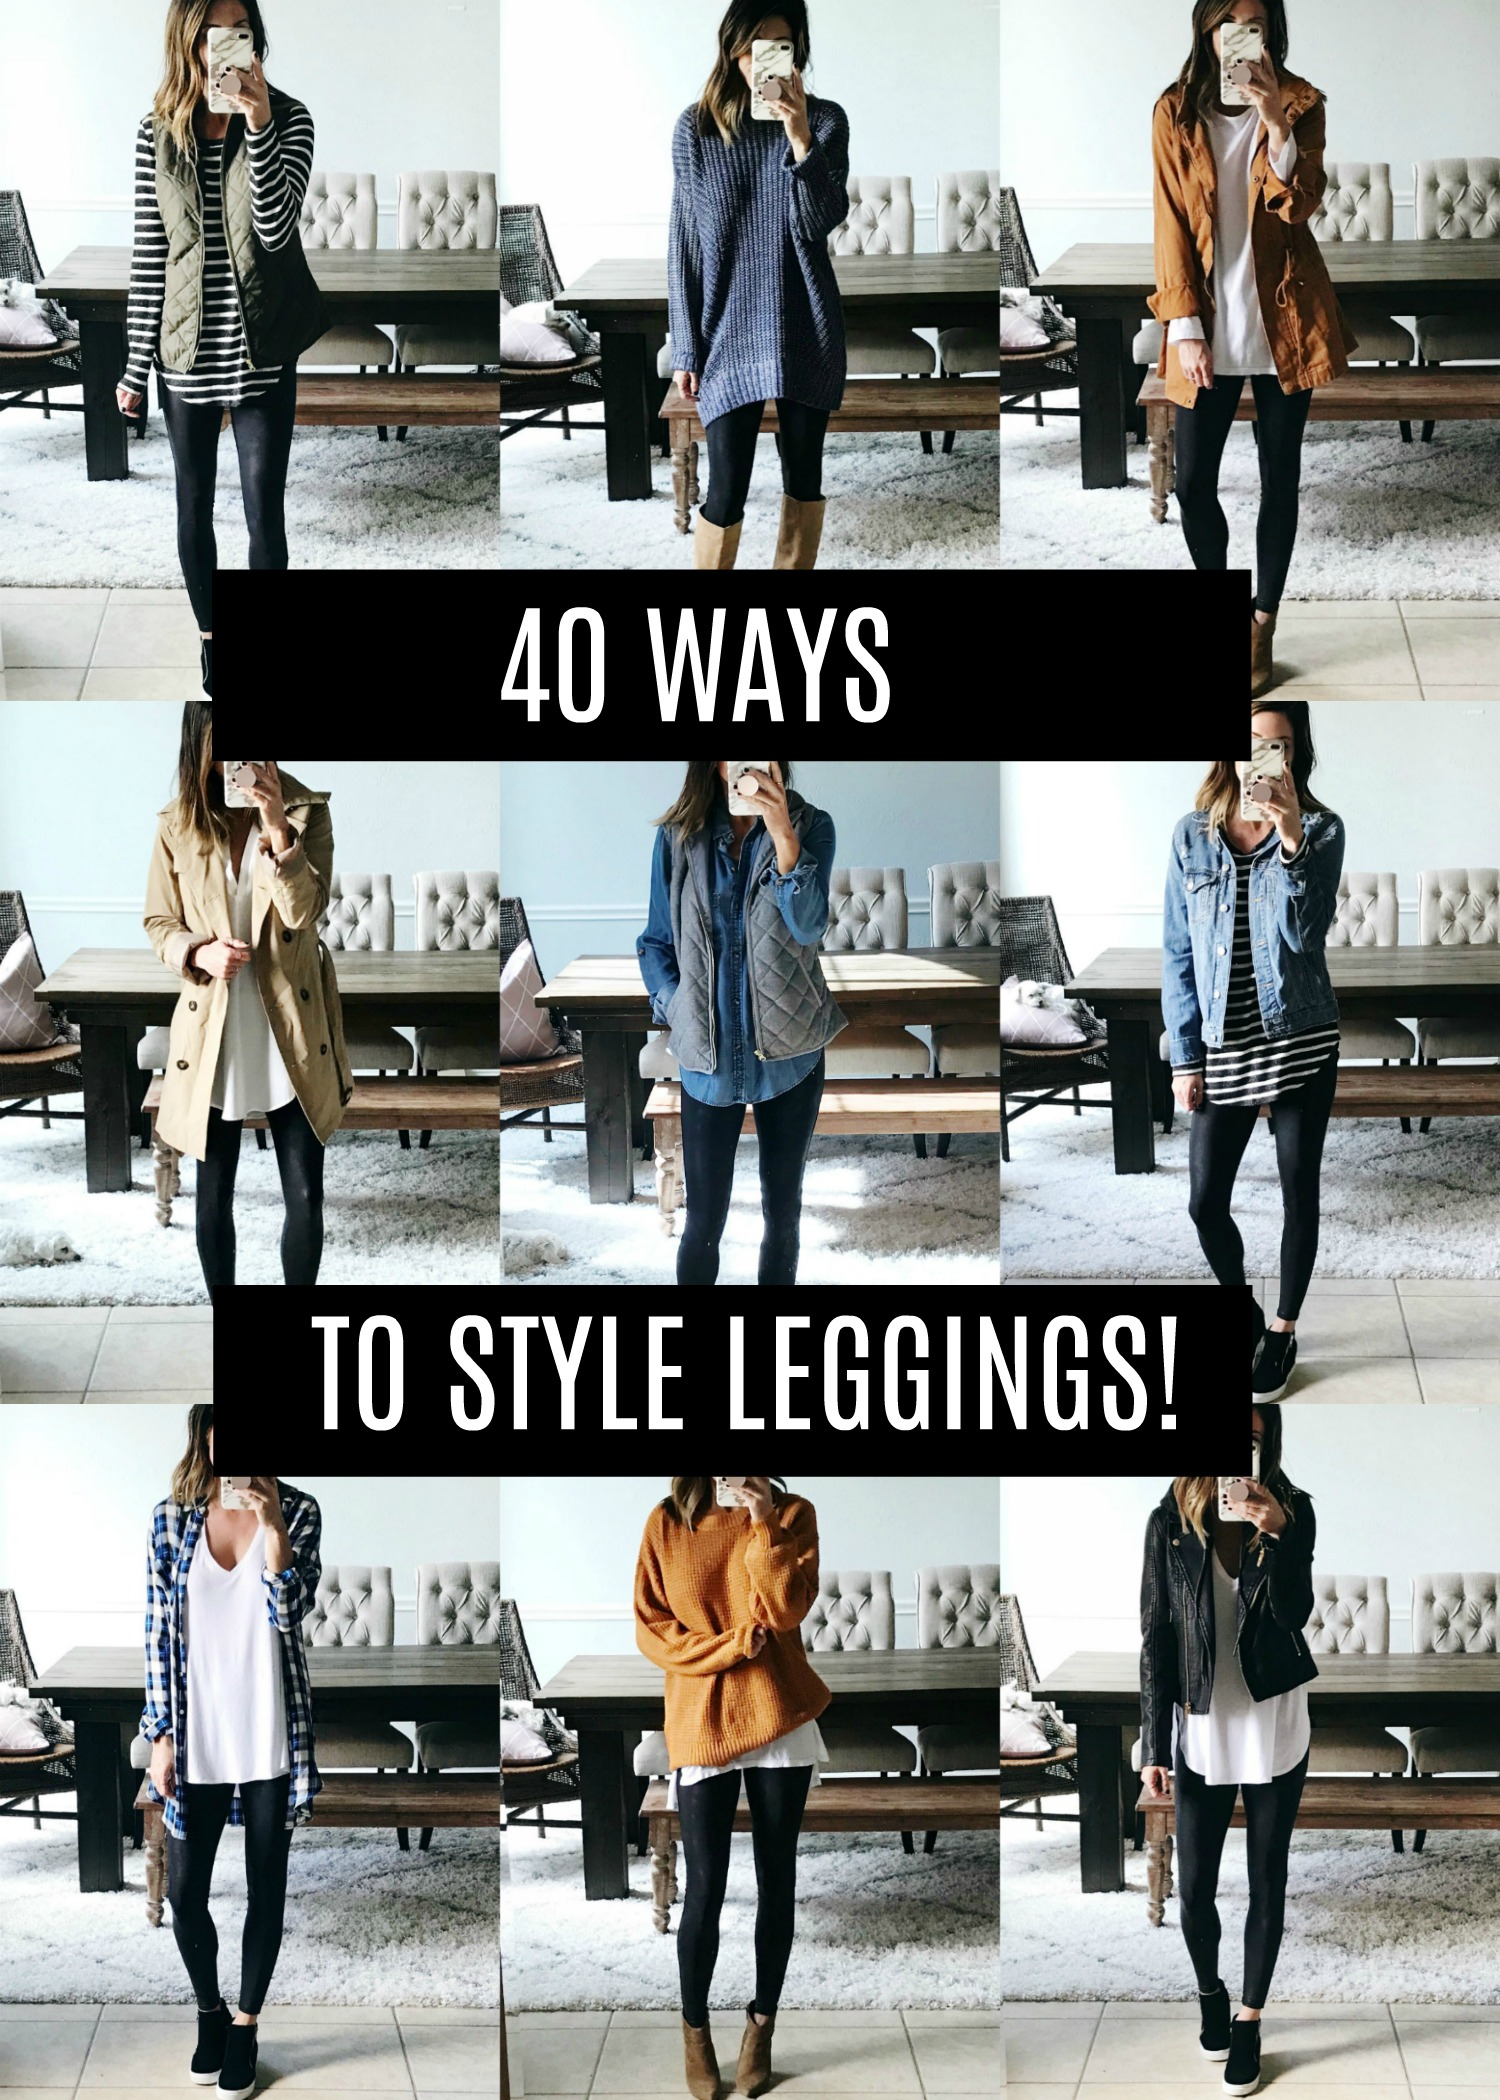 6cef755629d 40 Ways to Style Leggings! - The Sister Studio